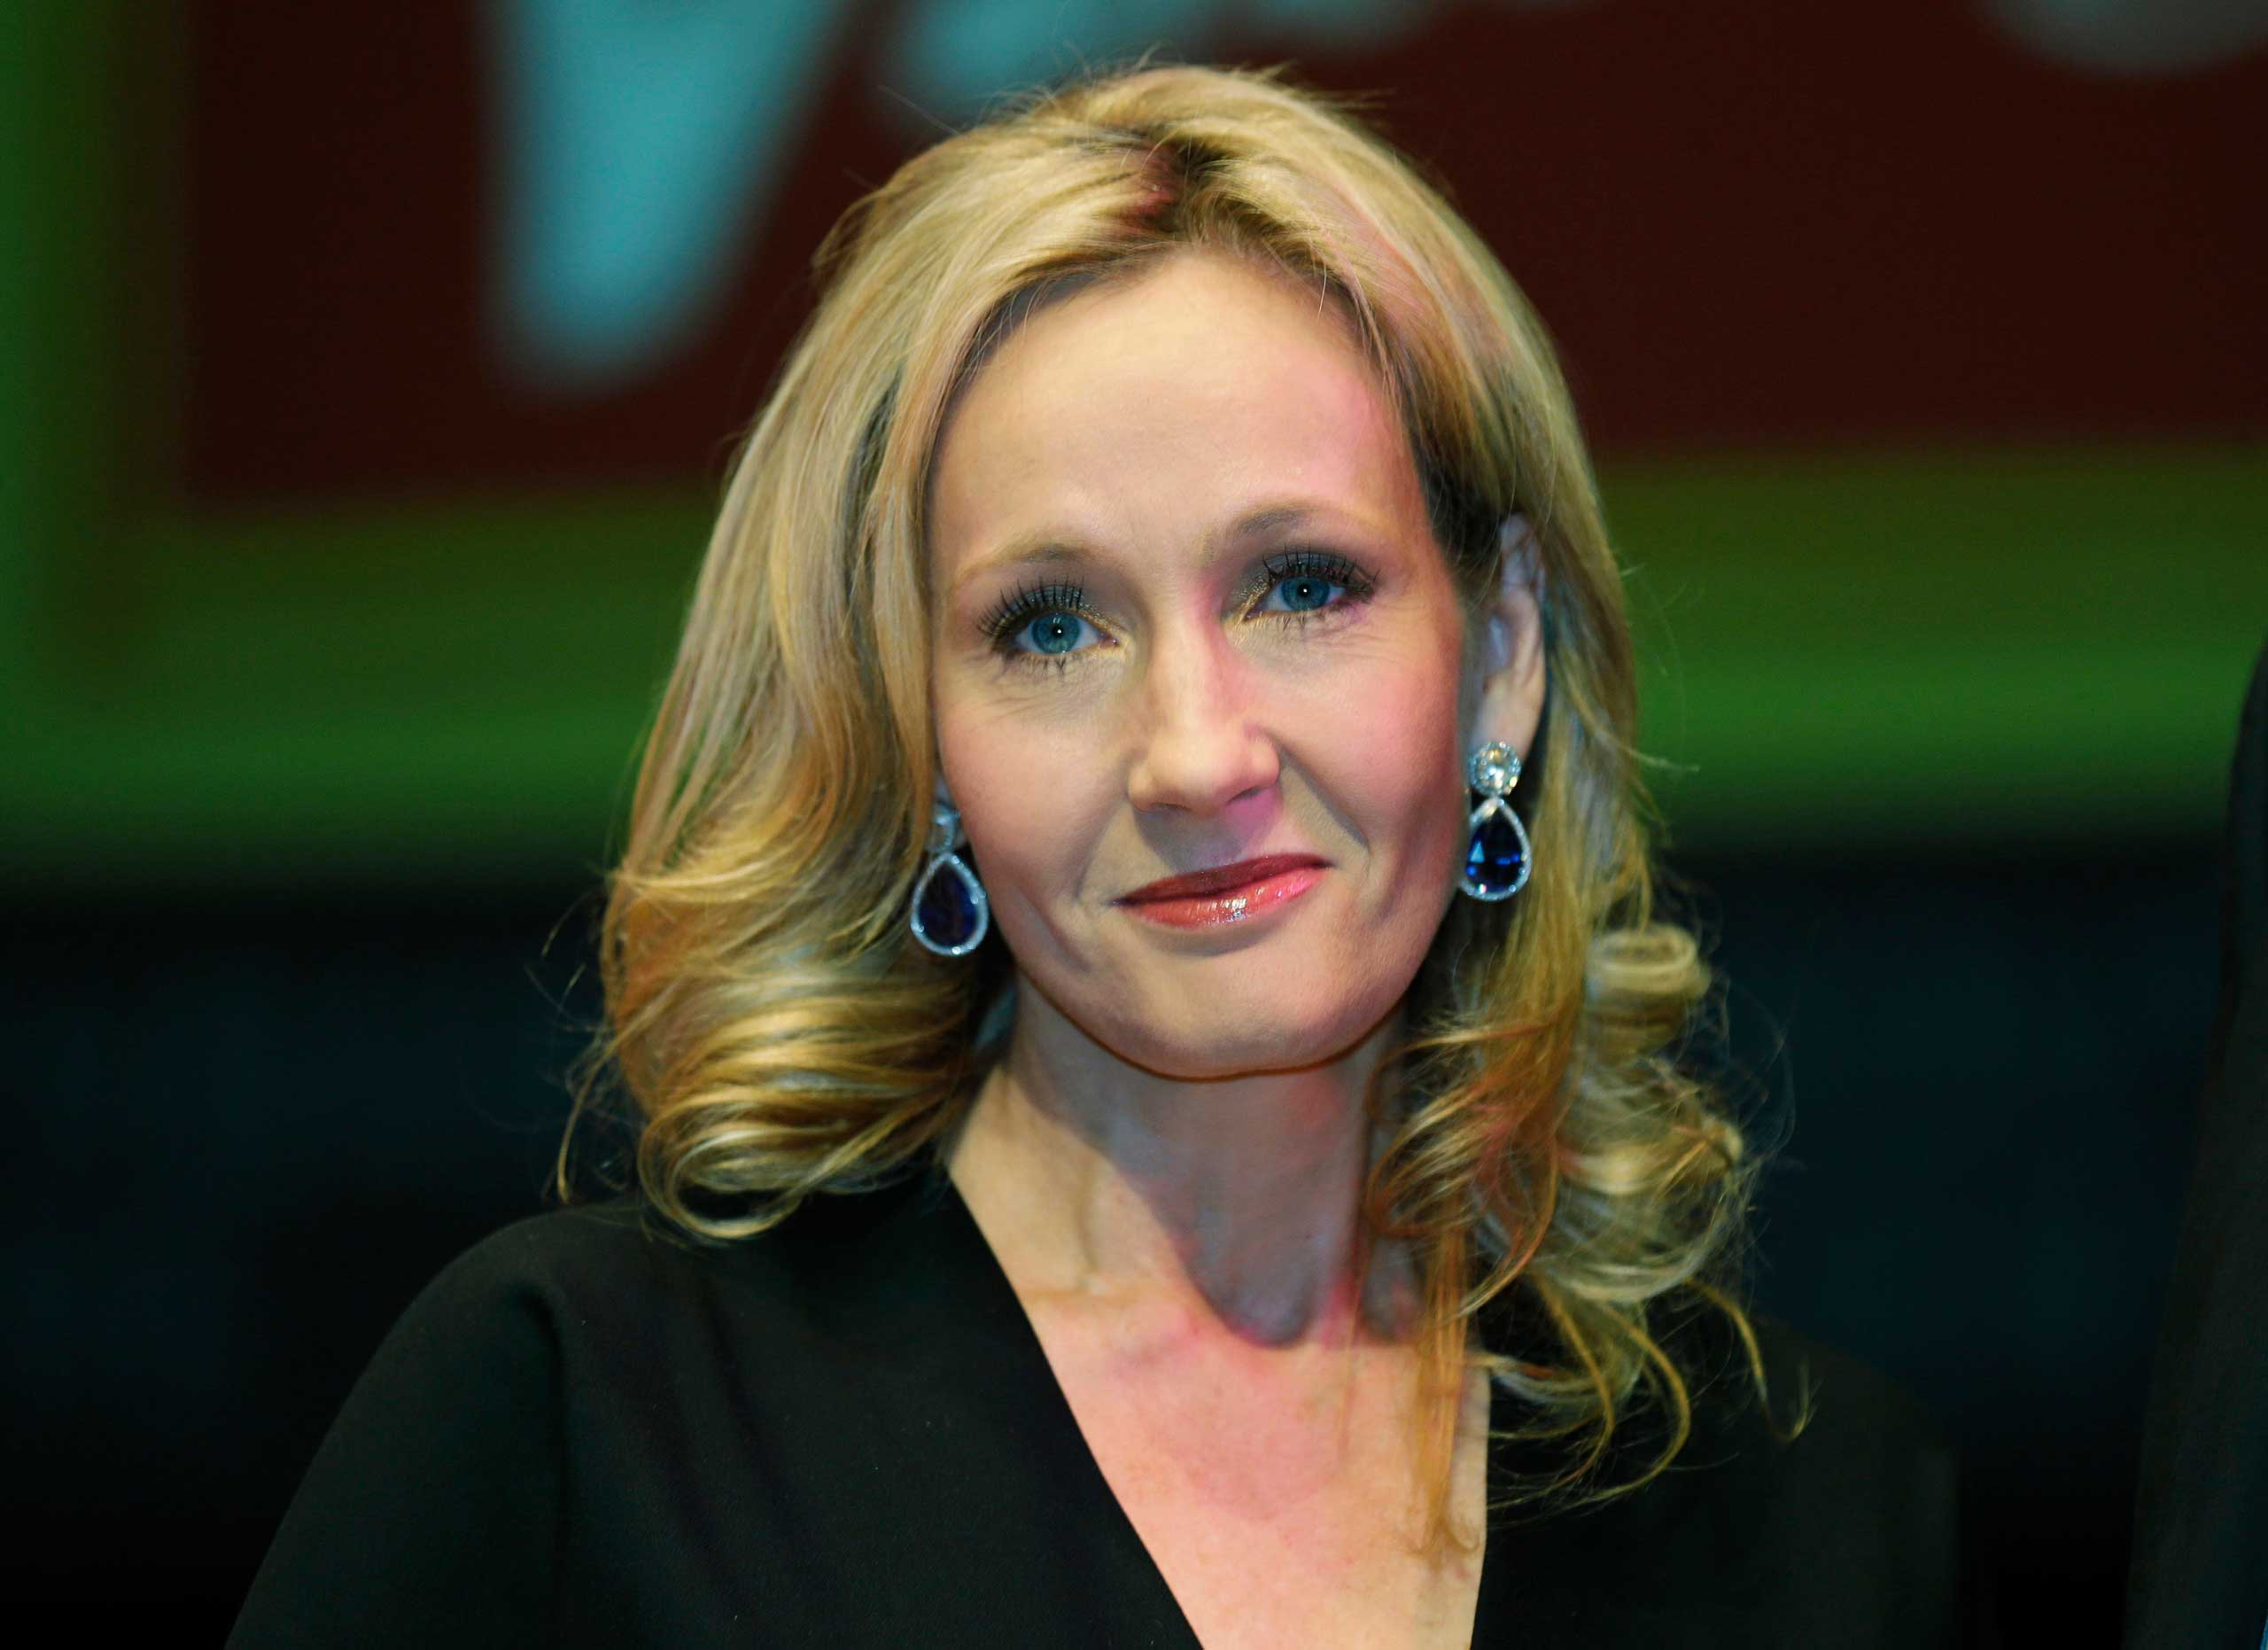 J.K. Rowling at the Southbank Centre in London in 2012.